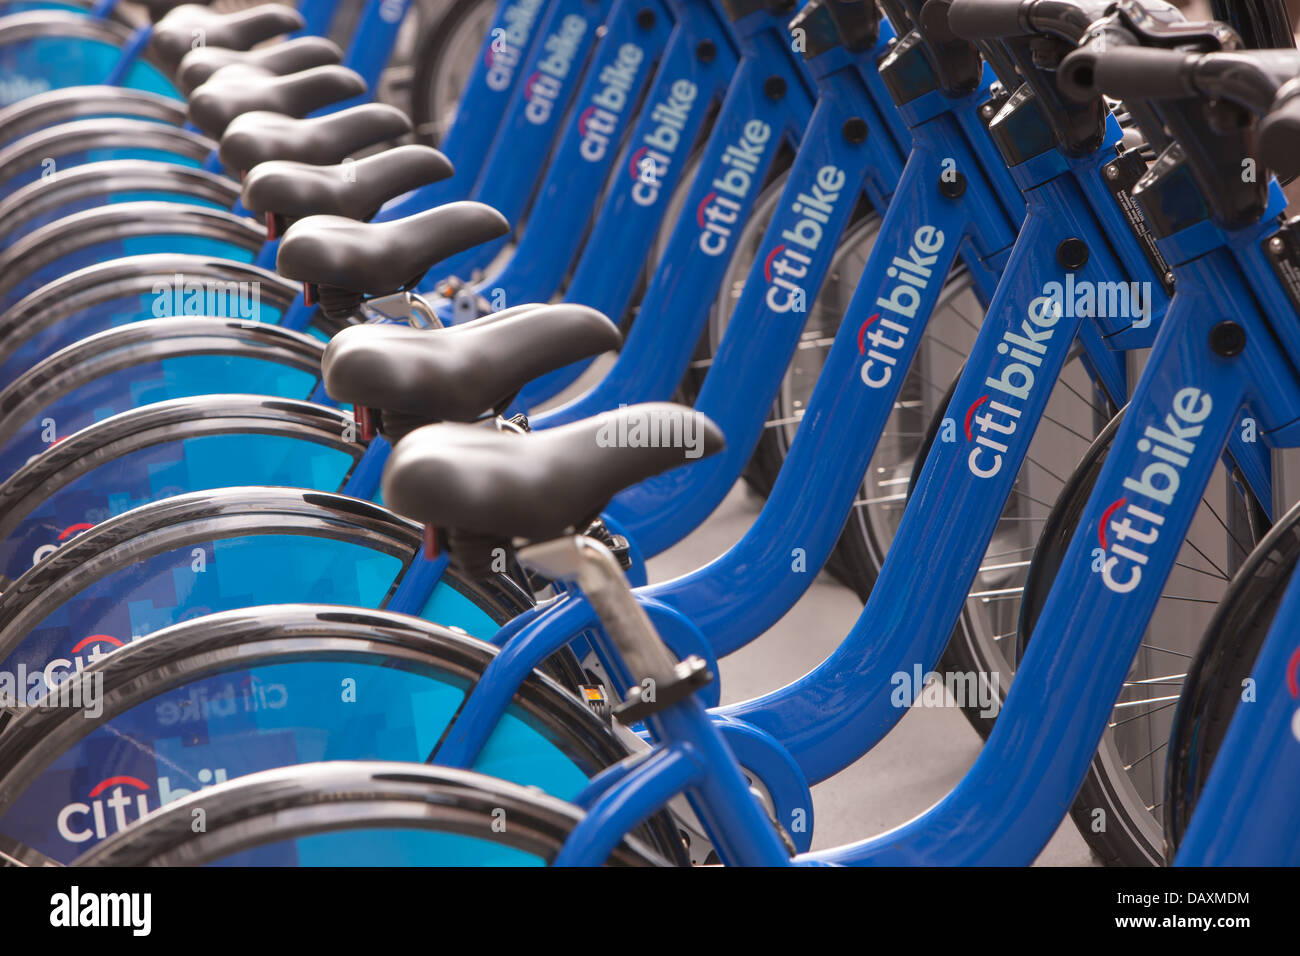 Public bicycles of the Citi Bike NYC bike sharing program wait in their docking stations for the next riders. - Stock Image